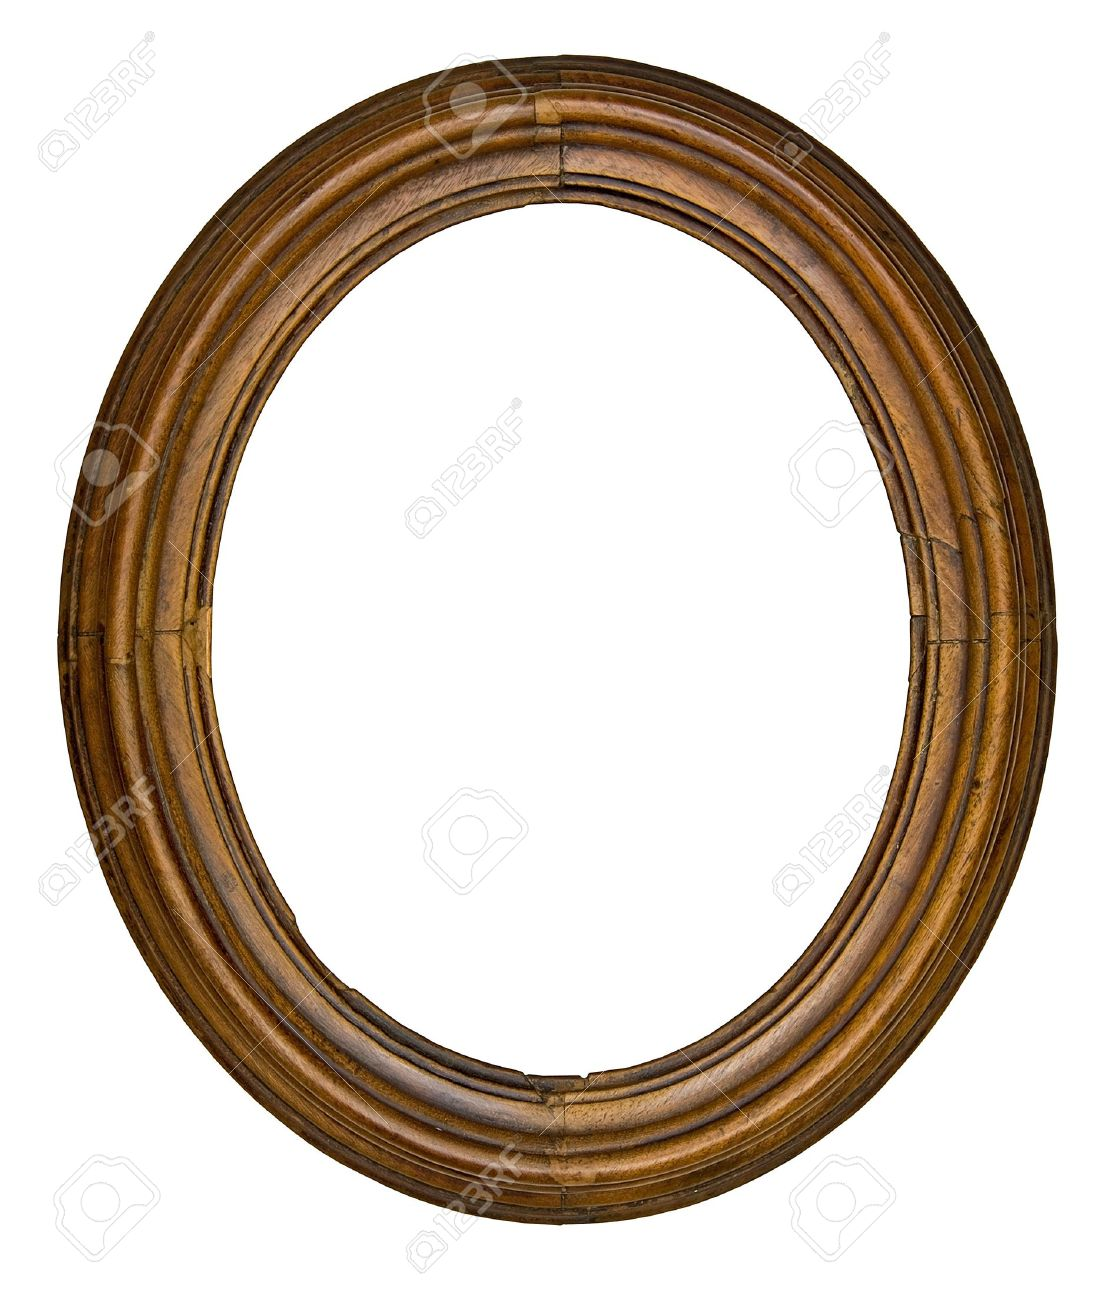 Vintage wooden oval frame isolated over white background stock vintage wooden oval frame isolated over white background stock photo 4208566 jeuxipadfo Gallery